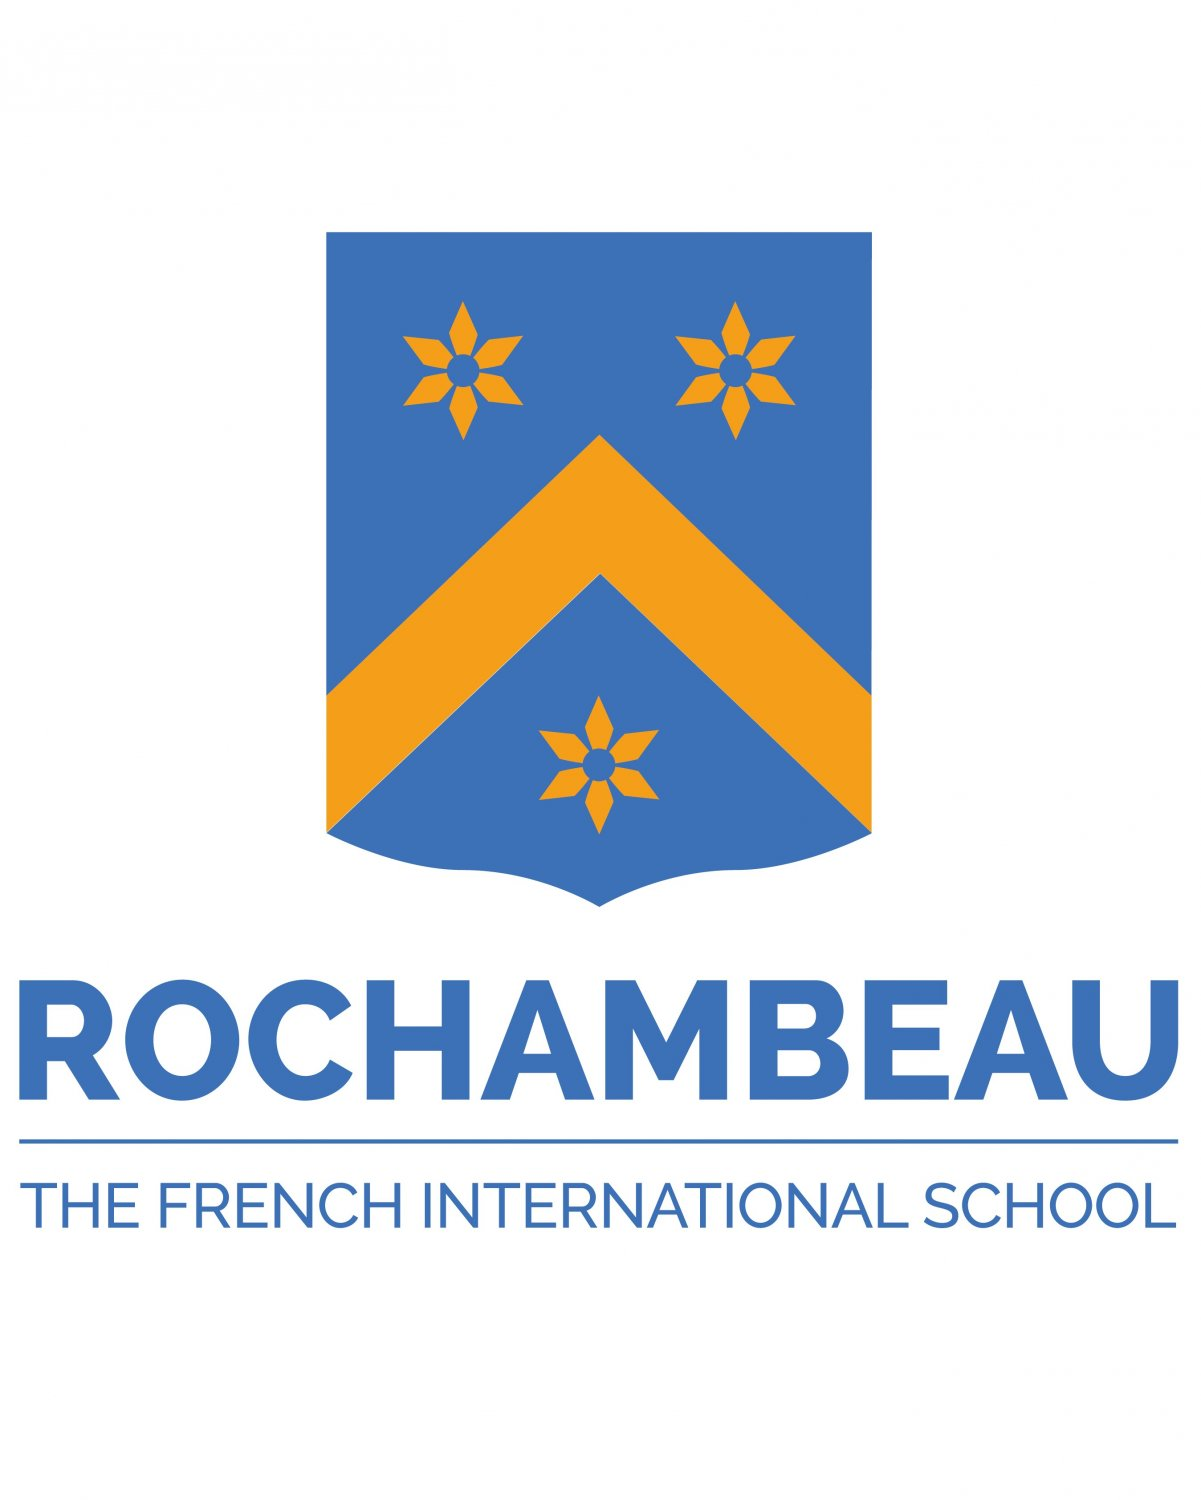 Rochambeau-The French International School